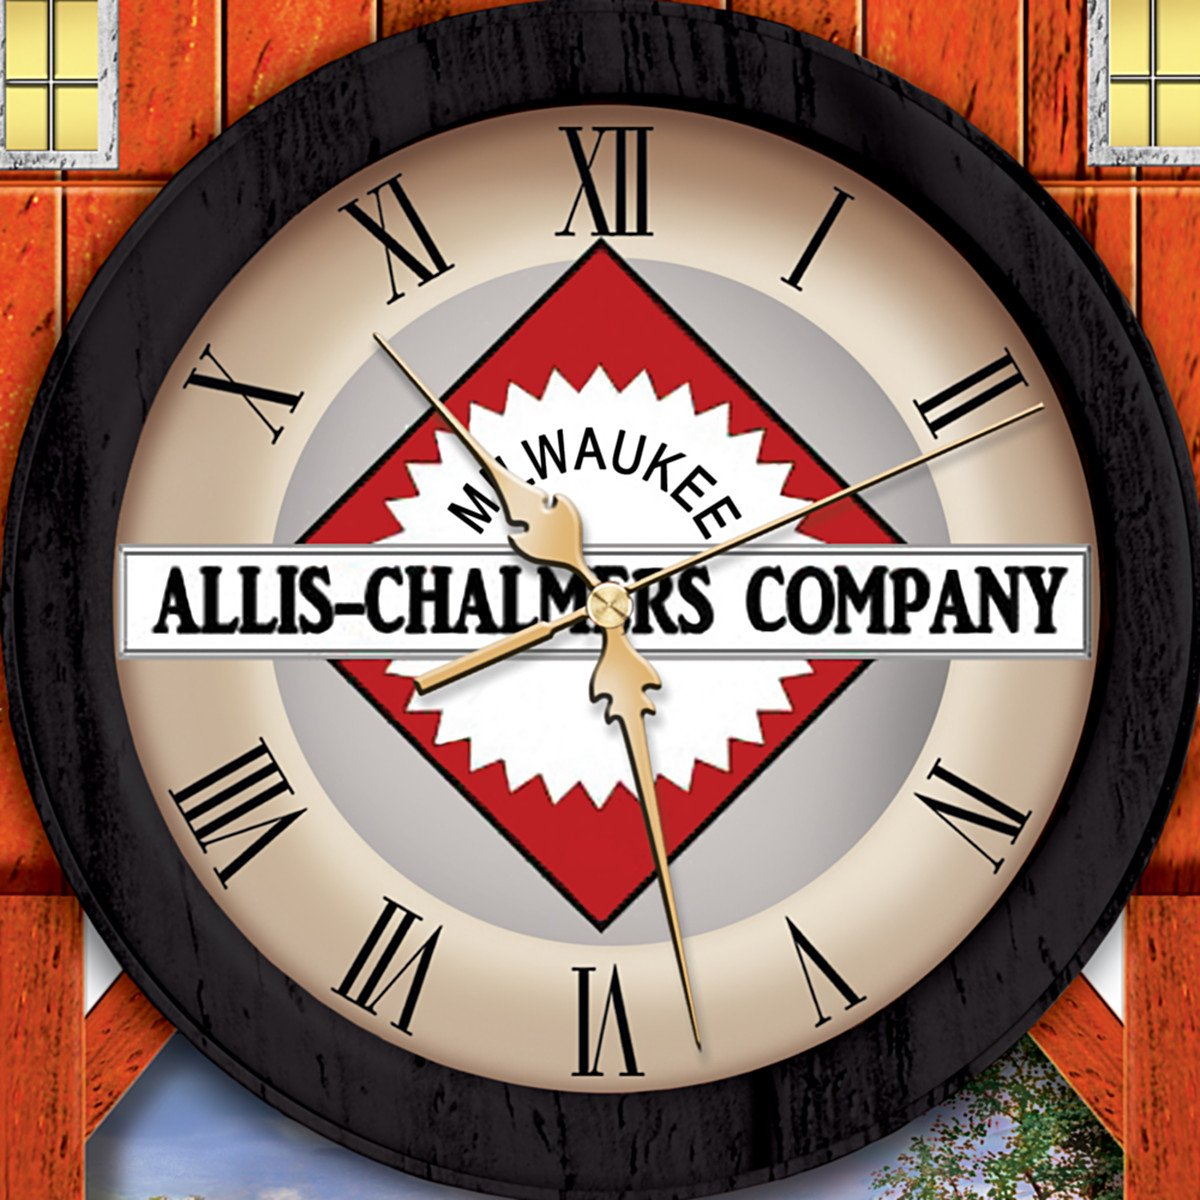 The Bradford Exchange Allis Chalmers Farm Cuckoo Clock with Logo and Dave Barnhouse Farm Imagery